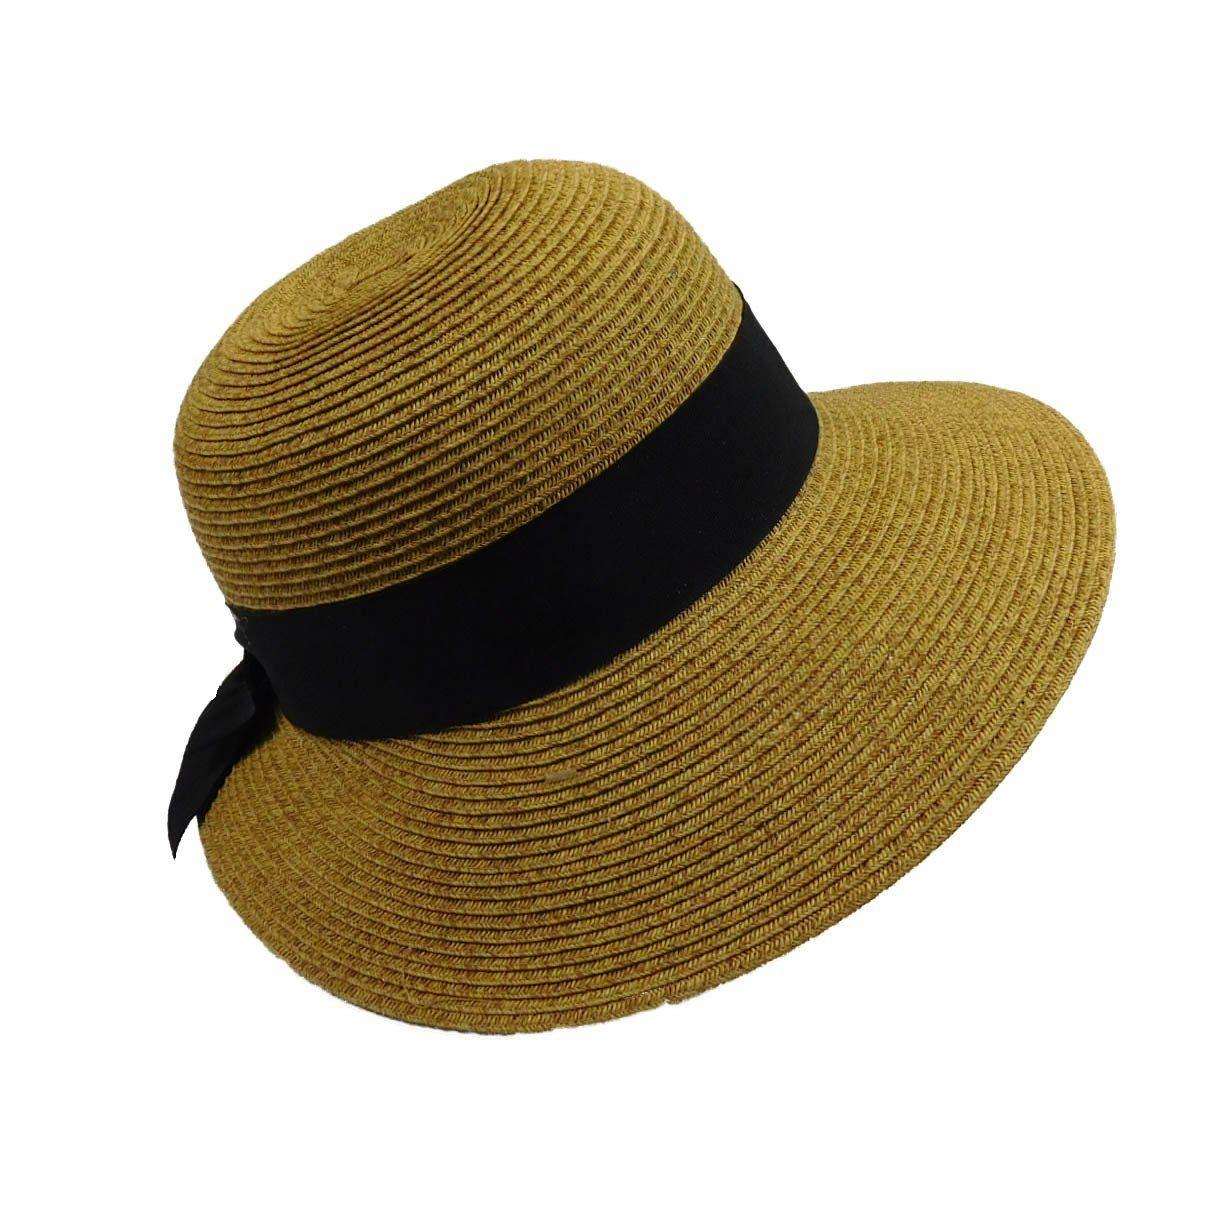 273ad3267 Sun Hat with Narrowing Brim - Karen Keith   Products   Summer hats ...